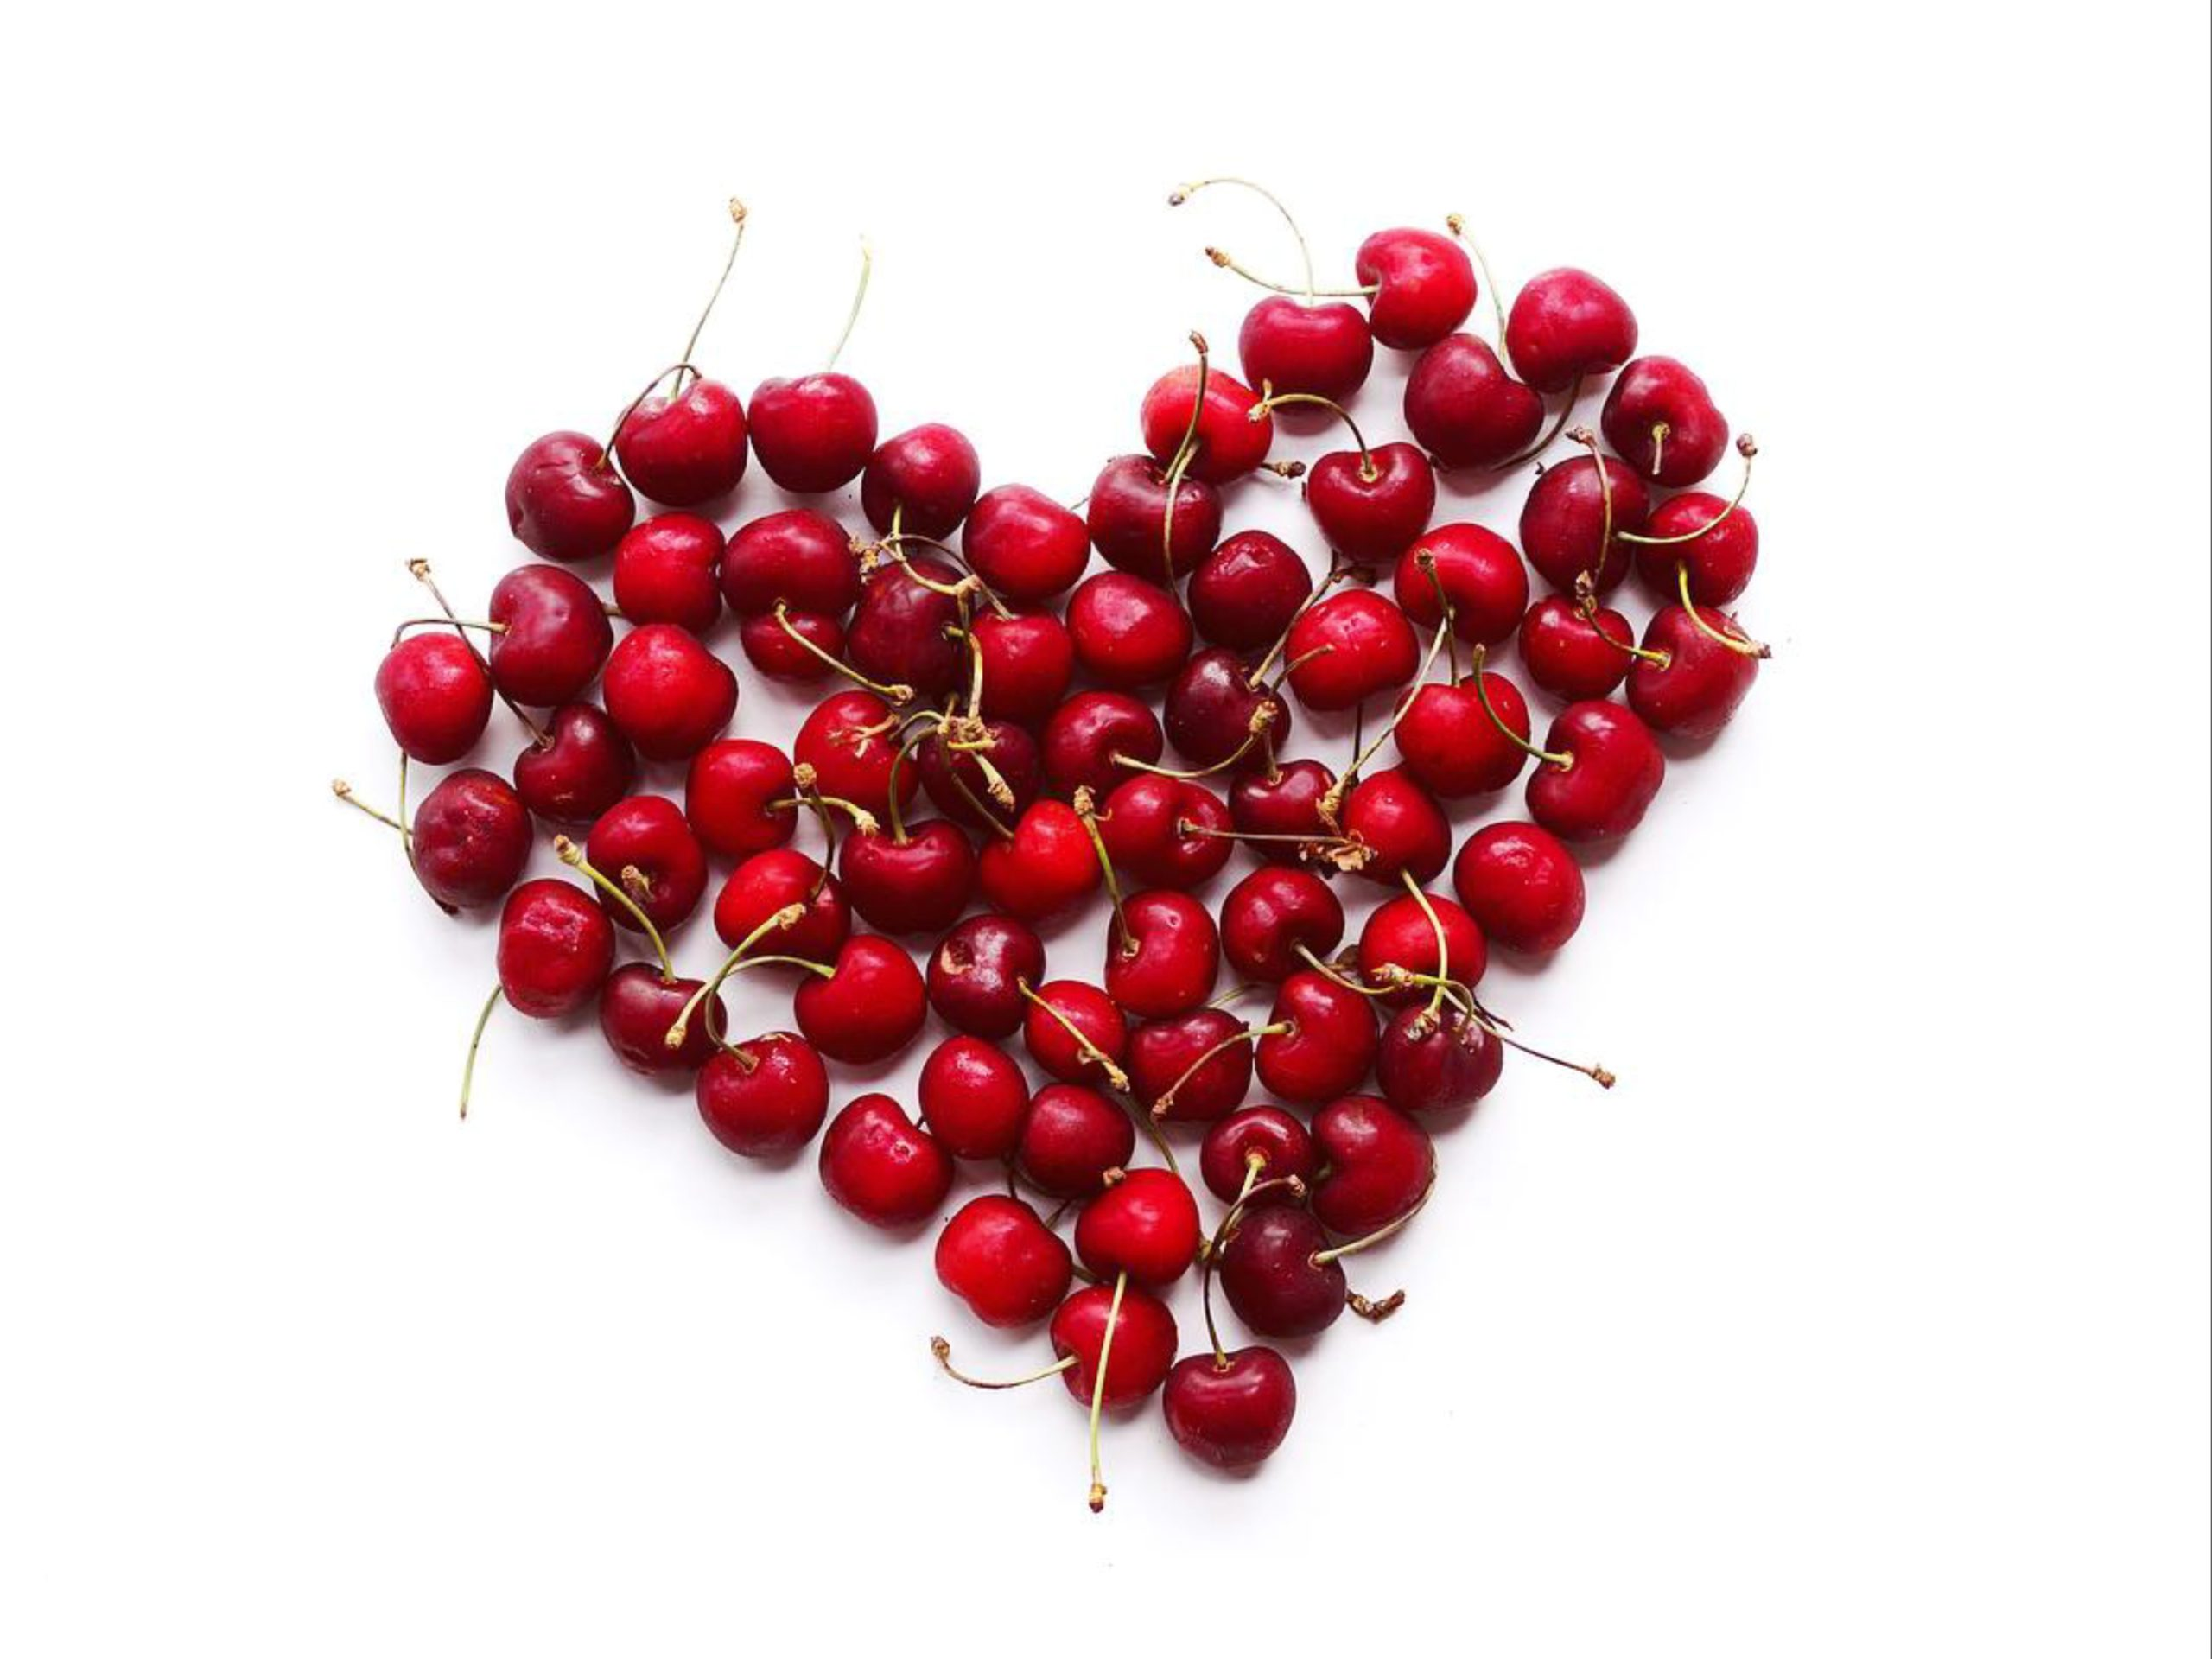 Heart shape made with red berries